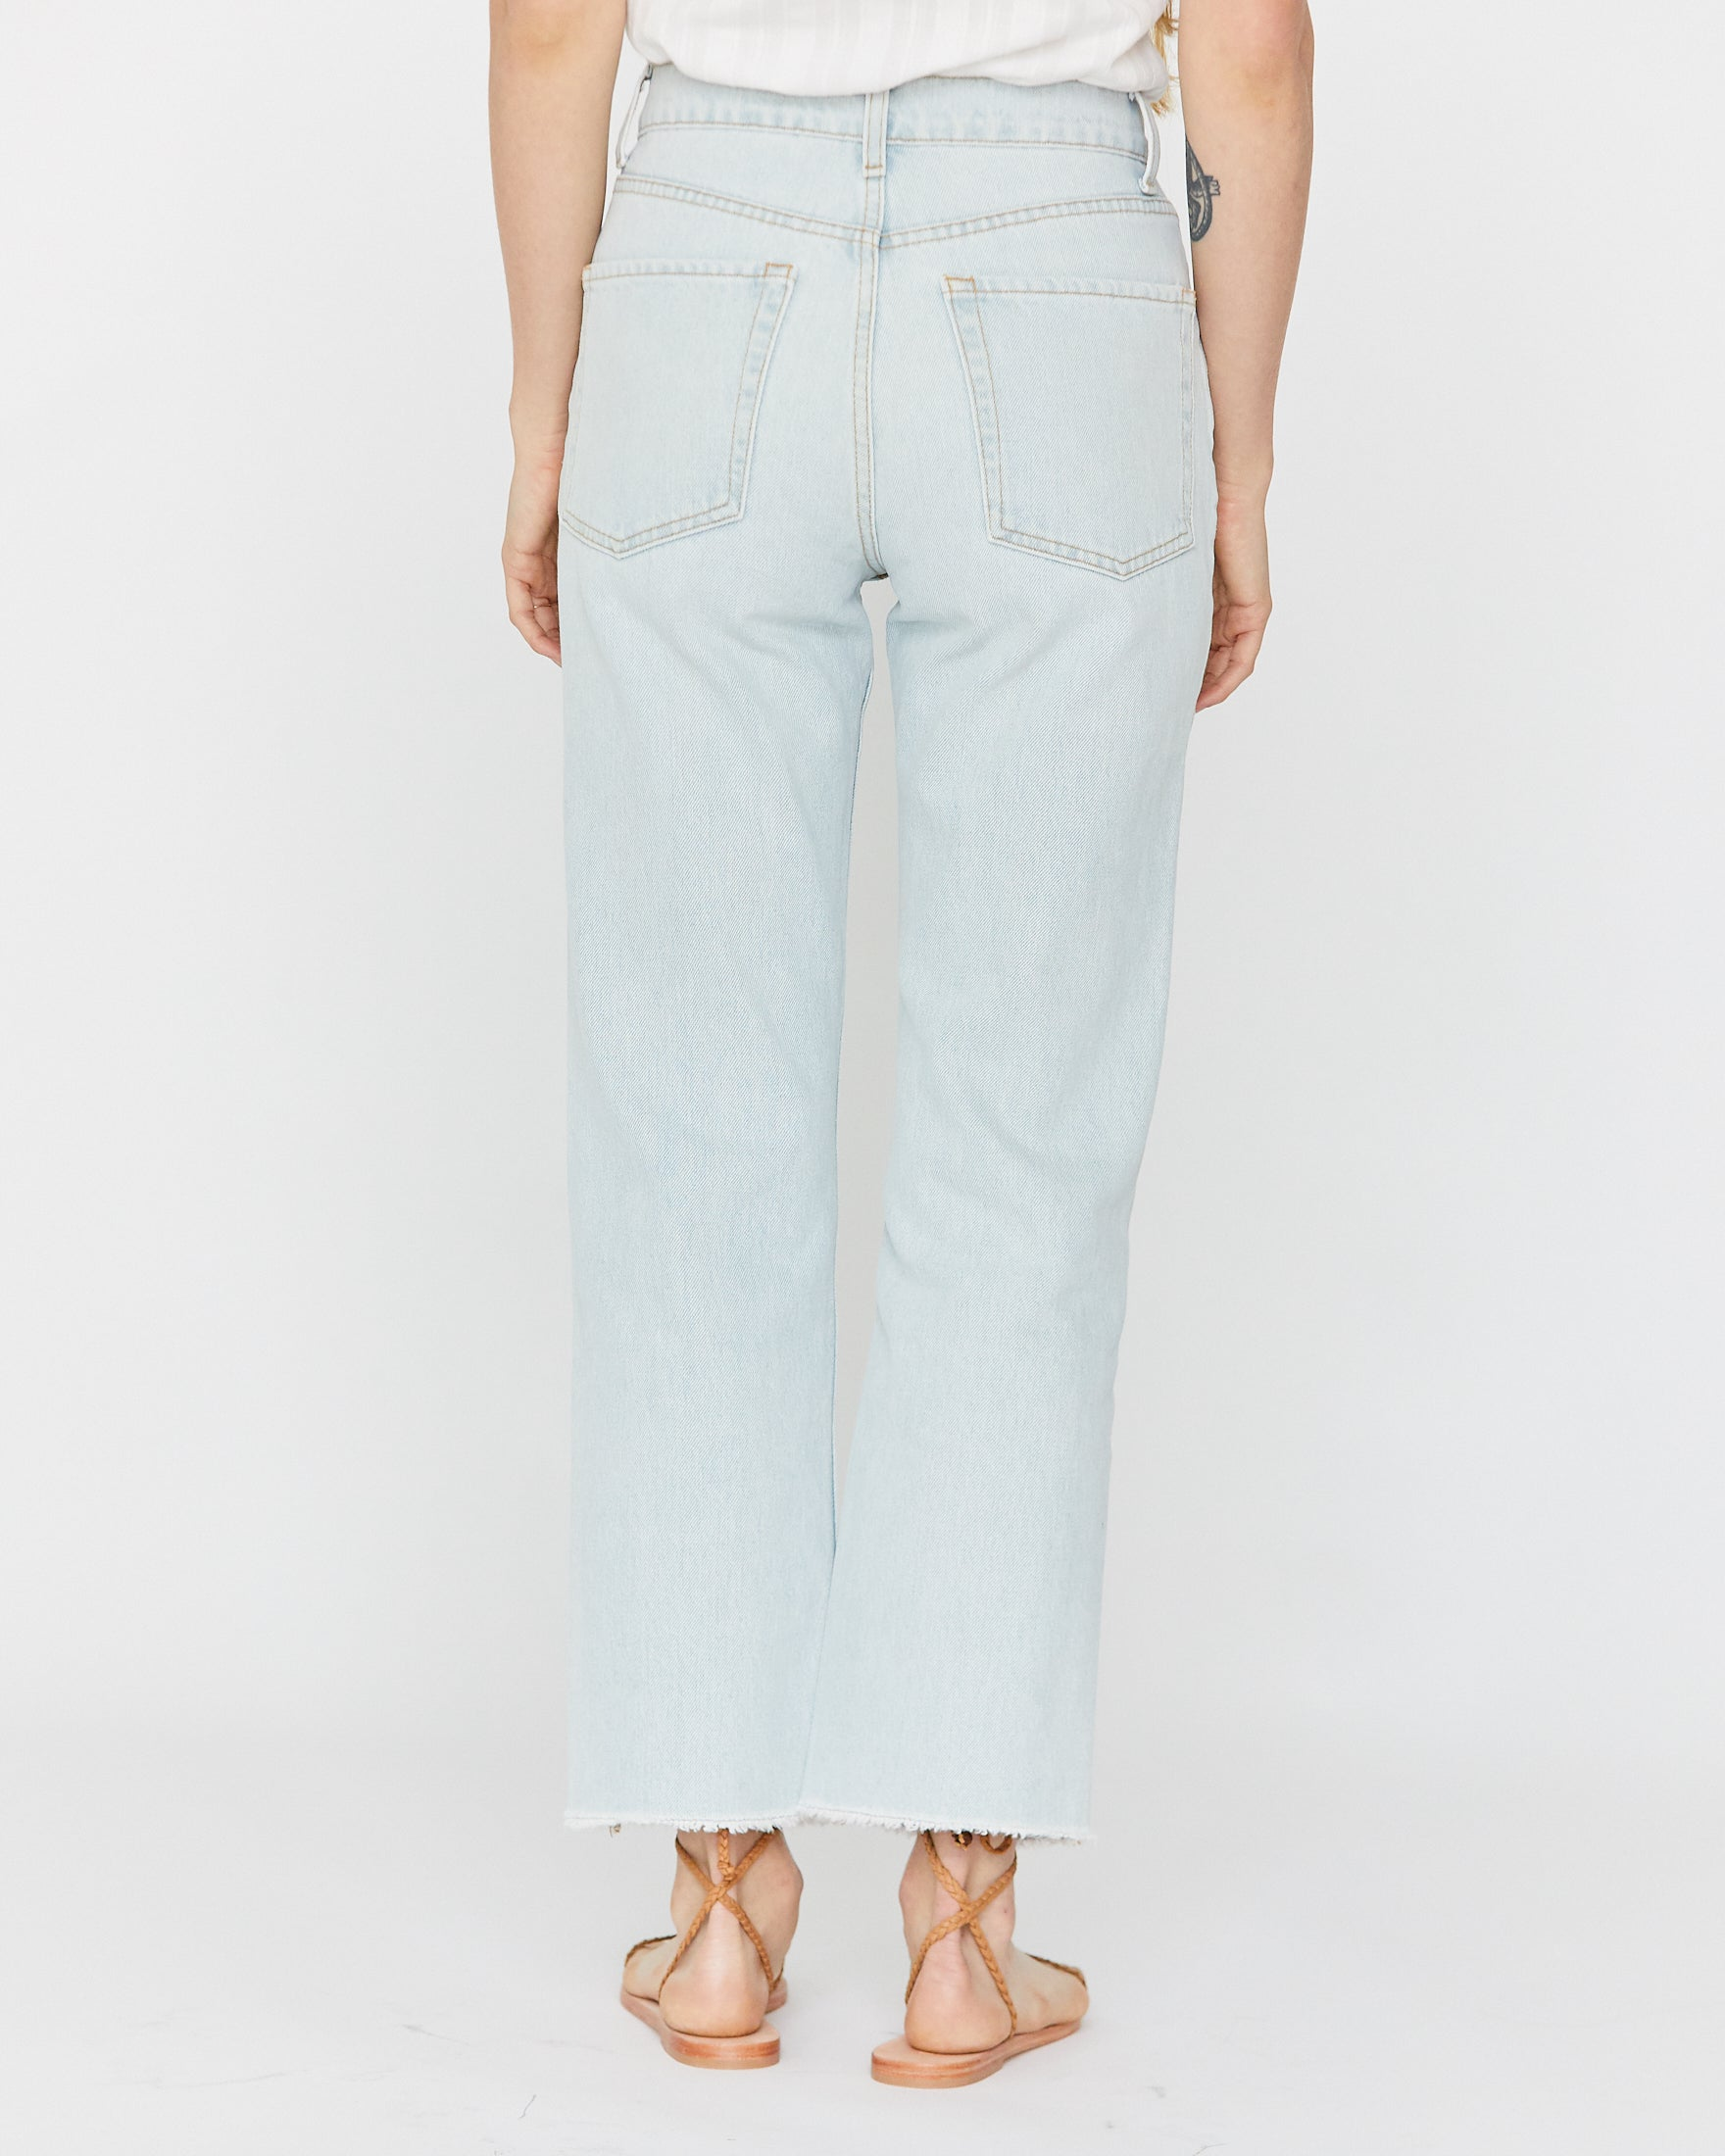 HAYLEY JEAN - SUN FADED DENIM